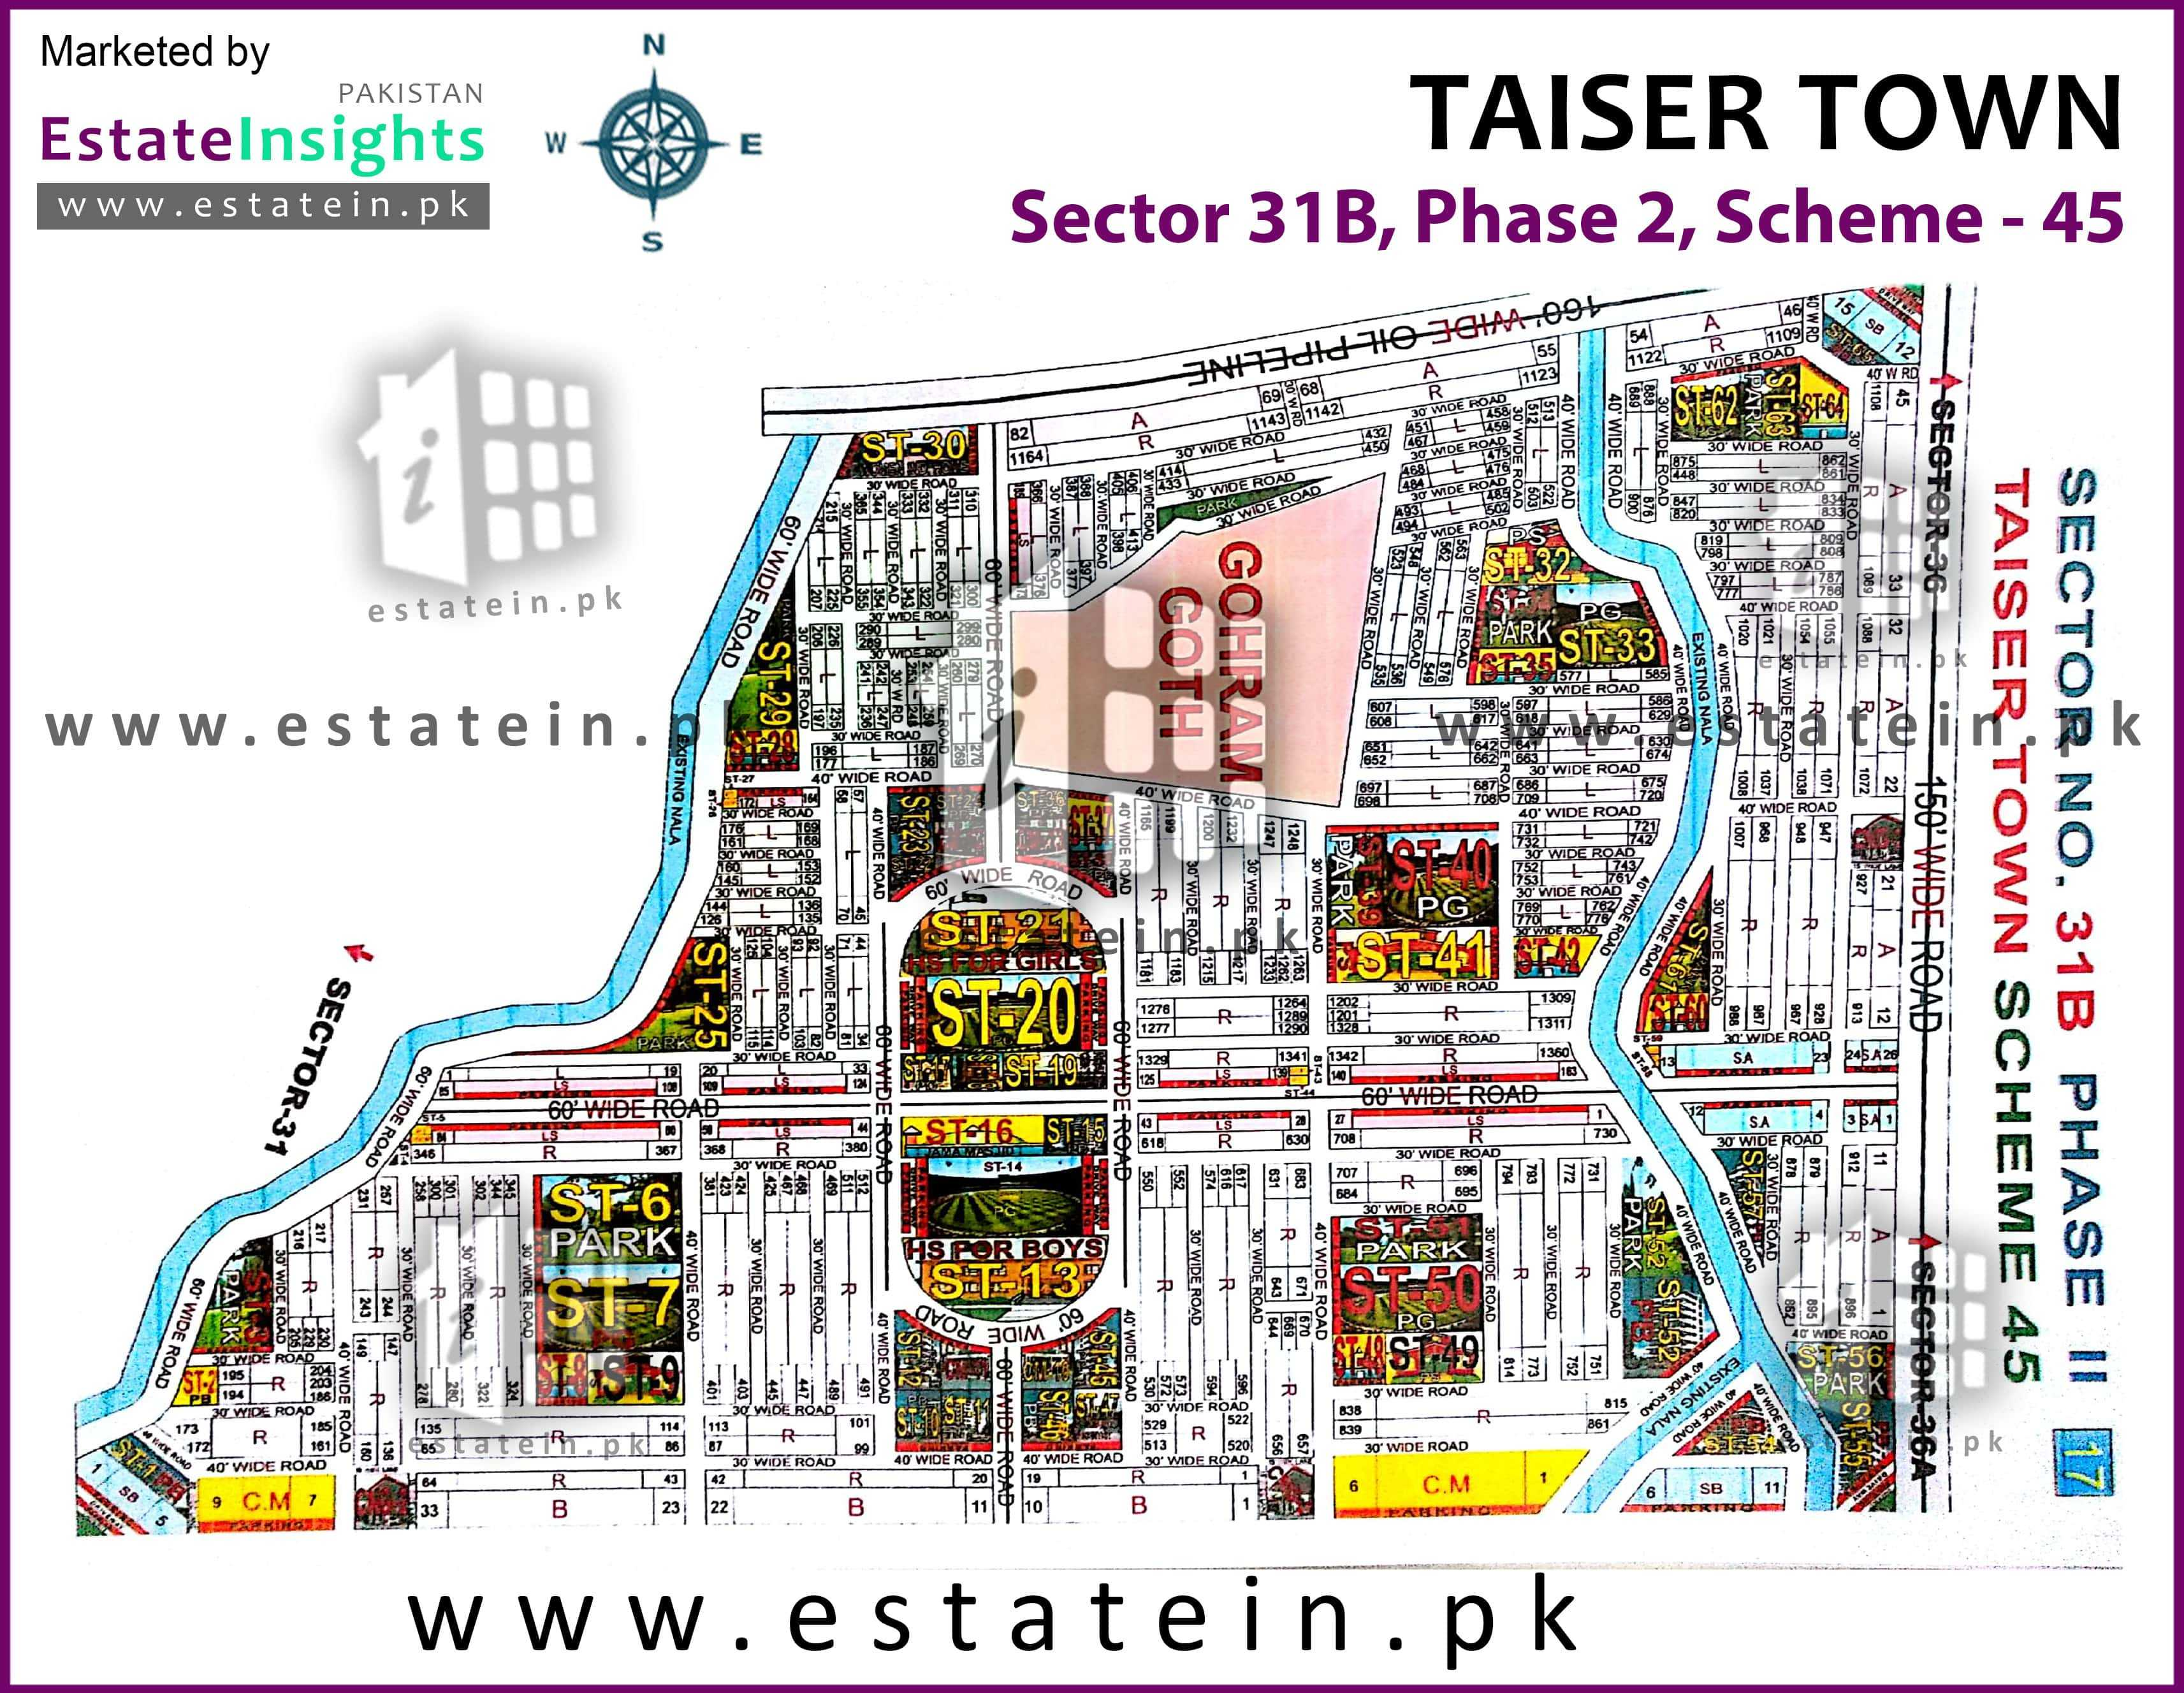 Site Plan of Sector 31B of Taiser Town Phase II